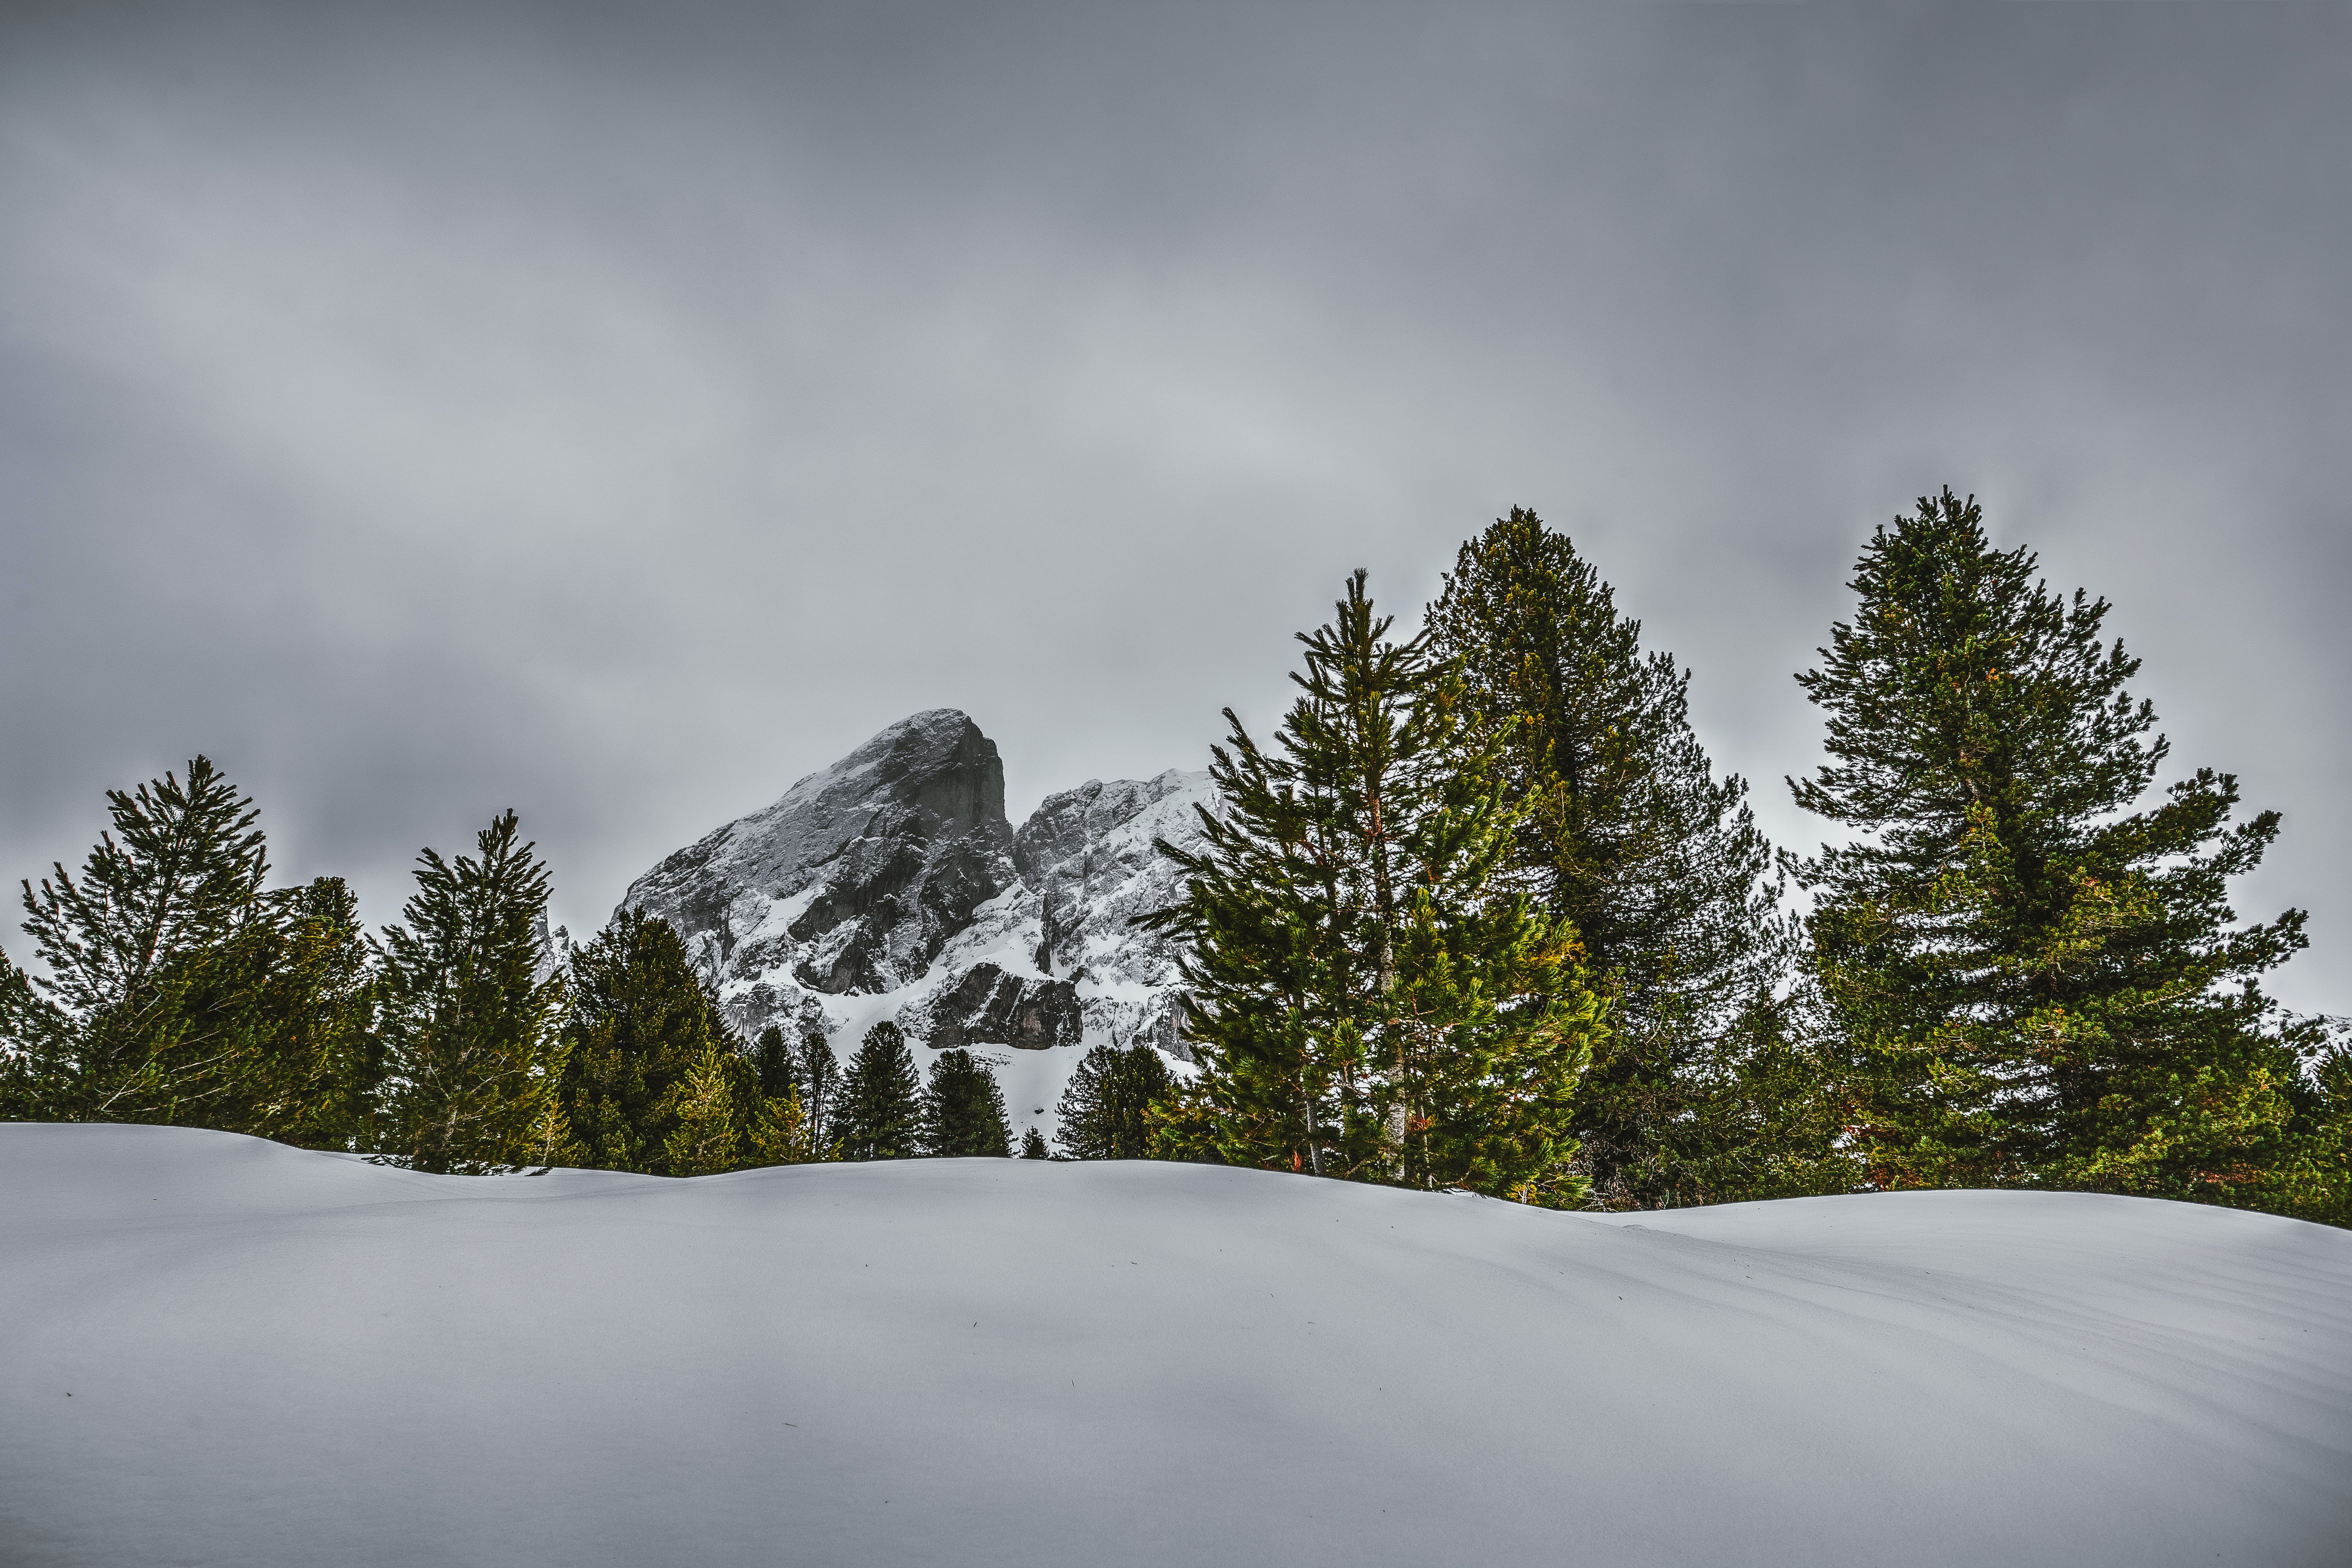 Photography of Pine Trees on Snow-capped Mountains